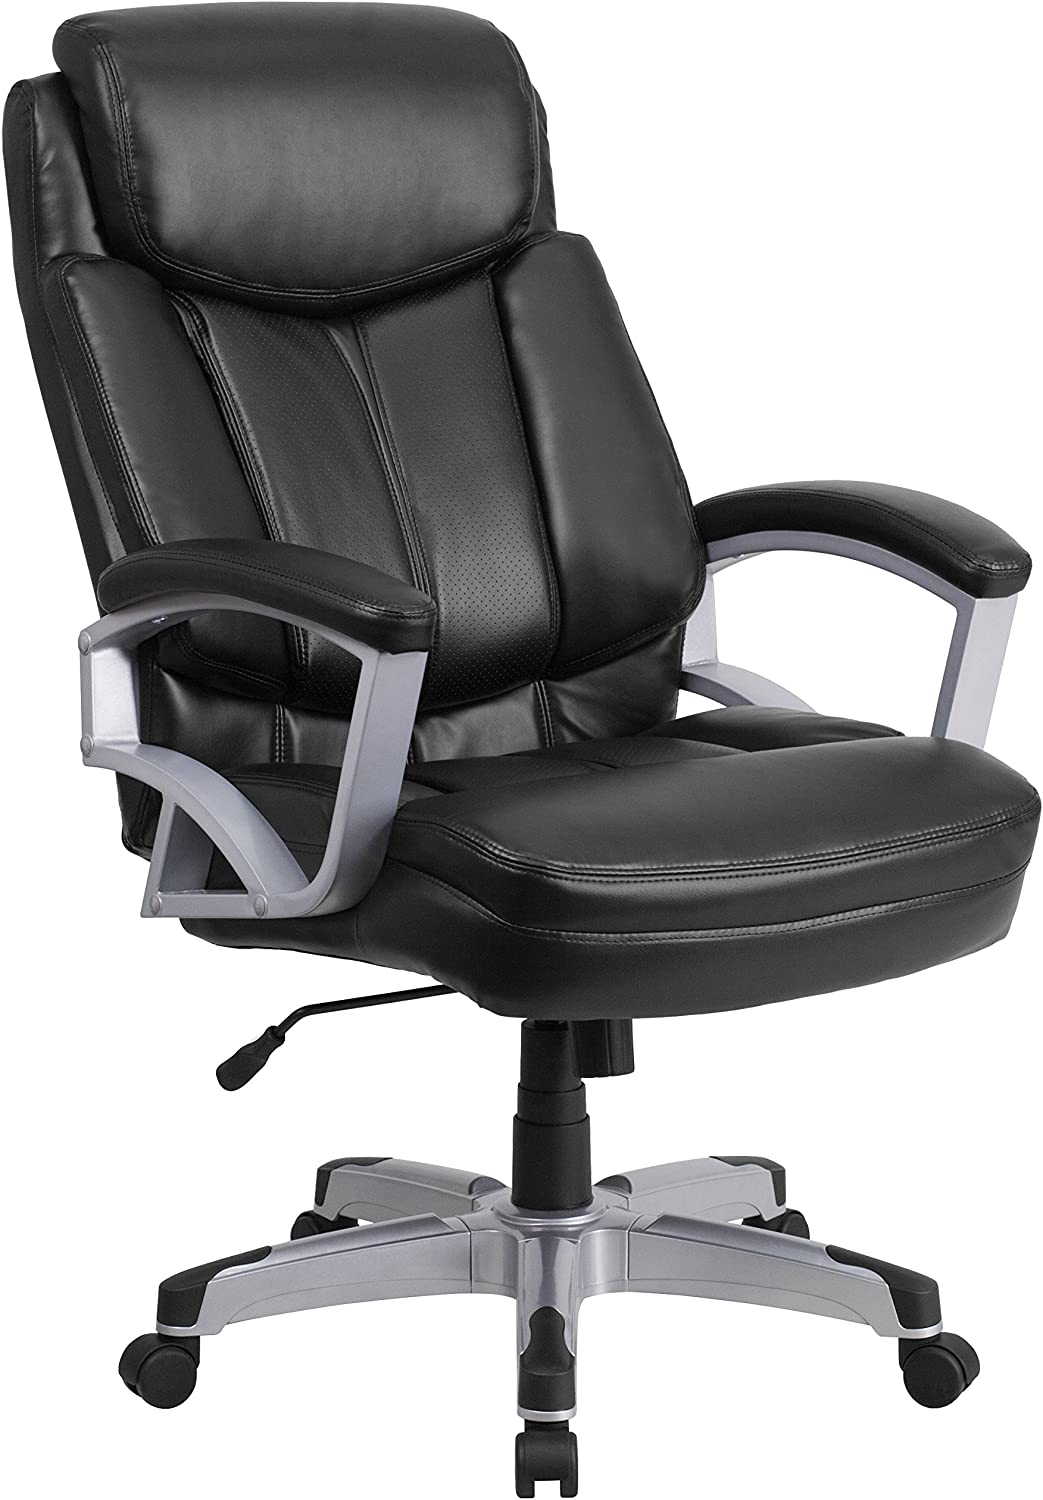 Flash Furniture HERCULES Series Big & Tall 500 lb. Rated Black Leather Executive Swivel Ergonomic Office Chair with Arms